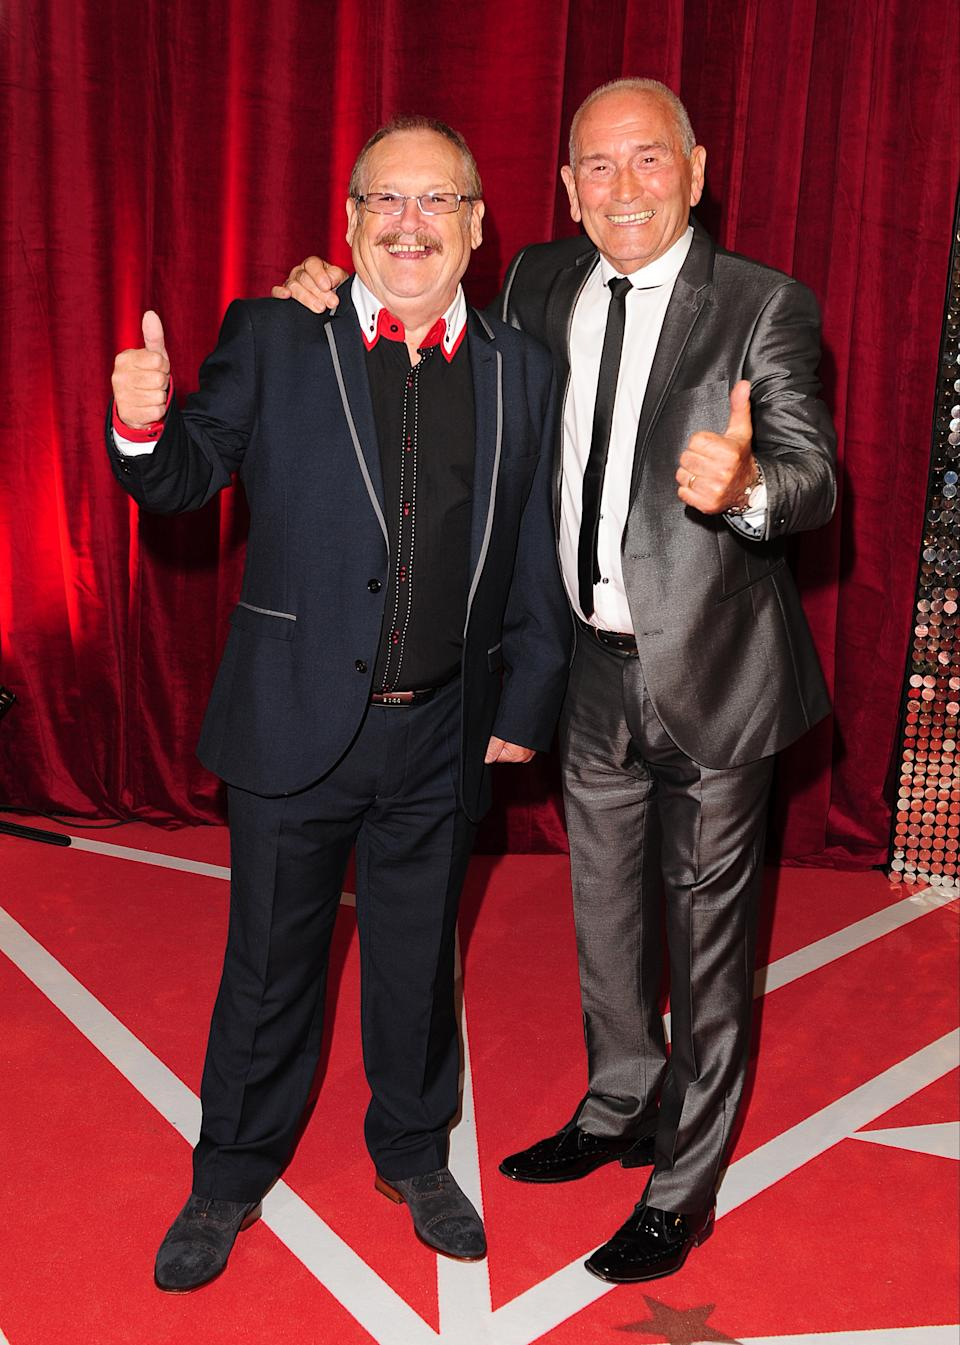 File photo dated 18/05/13 of Tommy Cannon (right) and Bobby Ball arriving for the 2013 British Soap Awards at MediaCityUK, Salford, Manchester. Bobby Ball, one half of the comedy double act Cannon and Ball, has died at the age of 76 after testing positive for Covid-19, his manager has said.